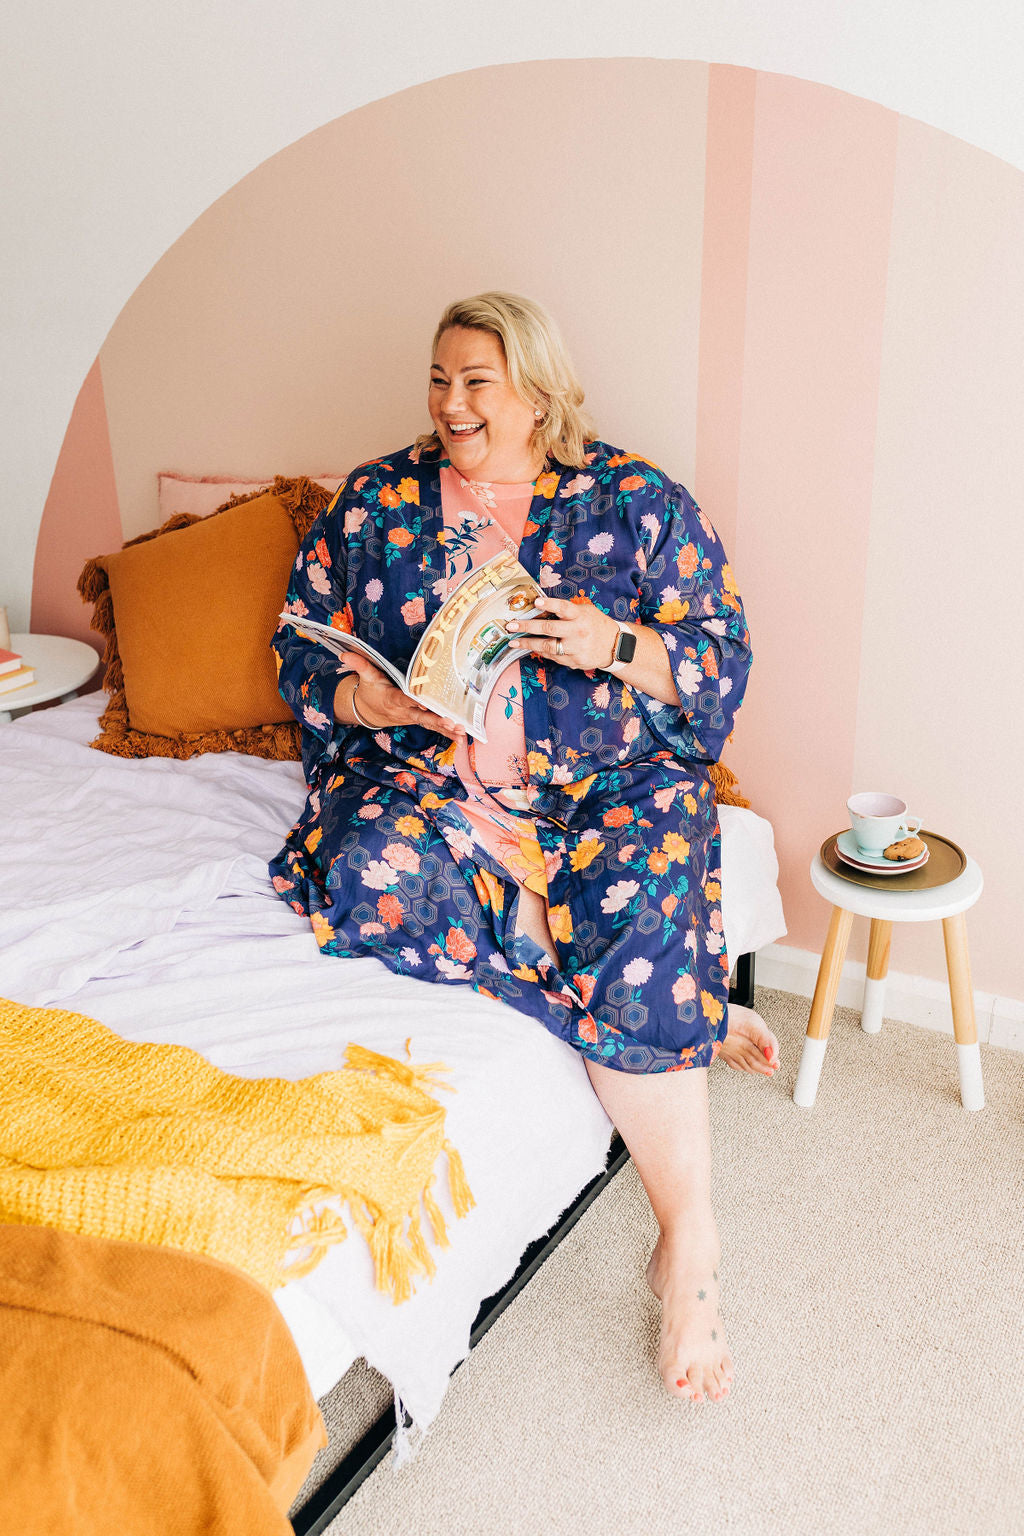 woman sitting in bed reading a magazine wearing a navy floral chimono robe